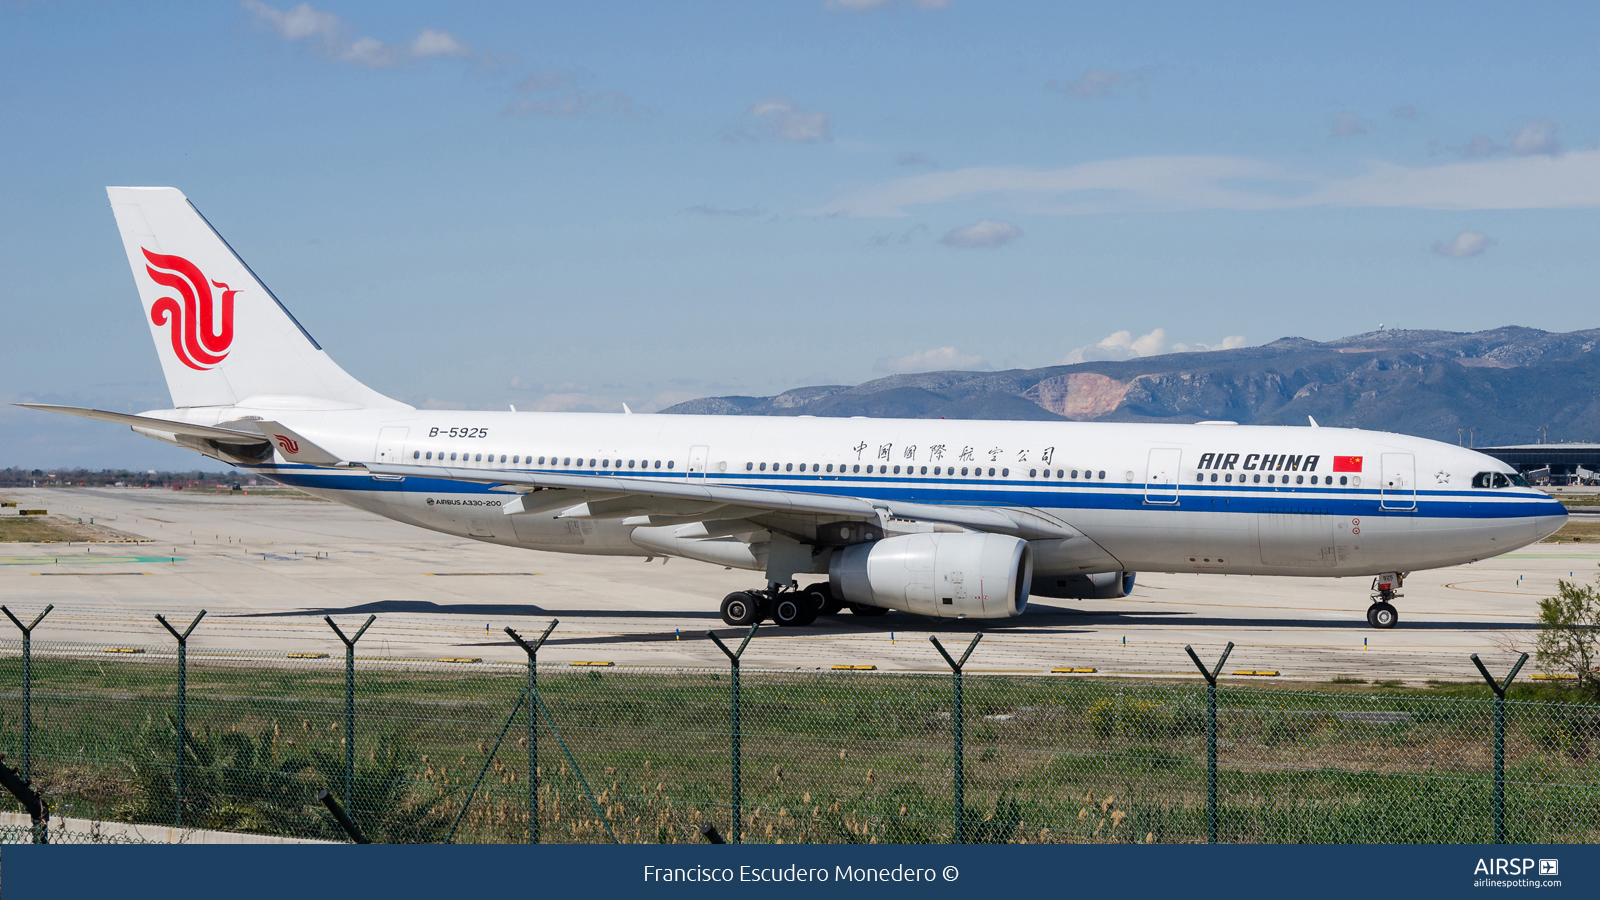 Air China  Airbus A330-200  B-5925